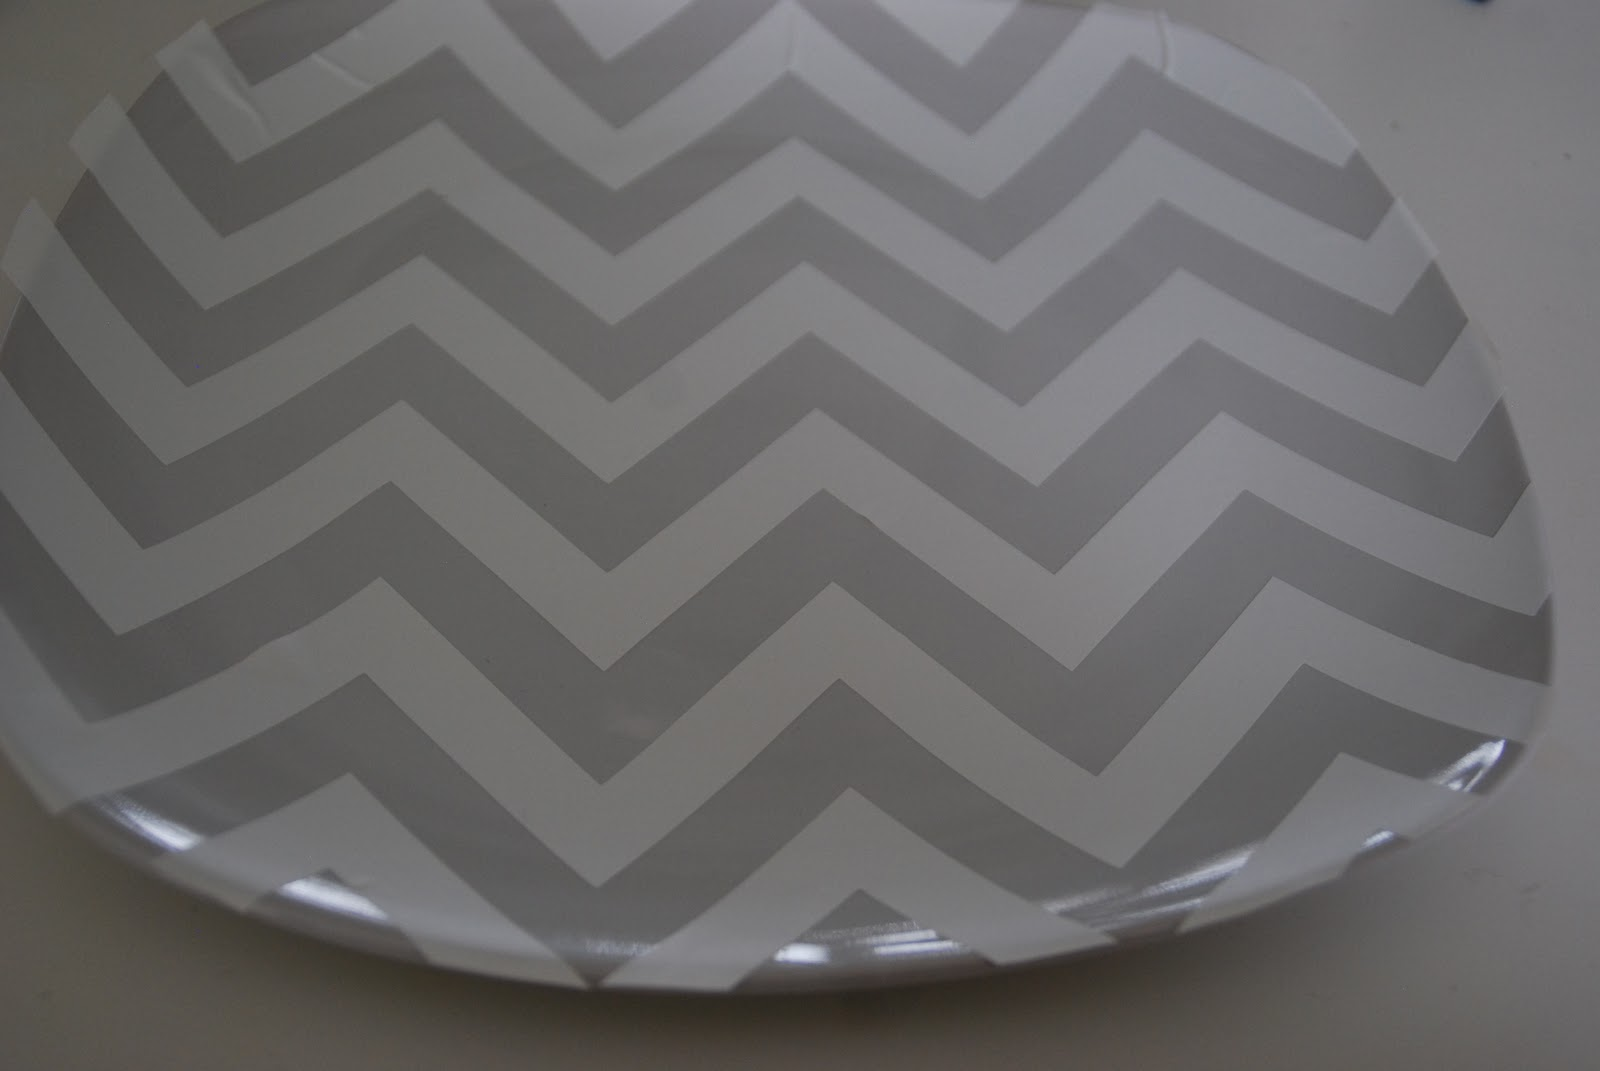 chevron template for painting - 5 challenge 3 different dollar store tiered tray ideas